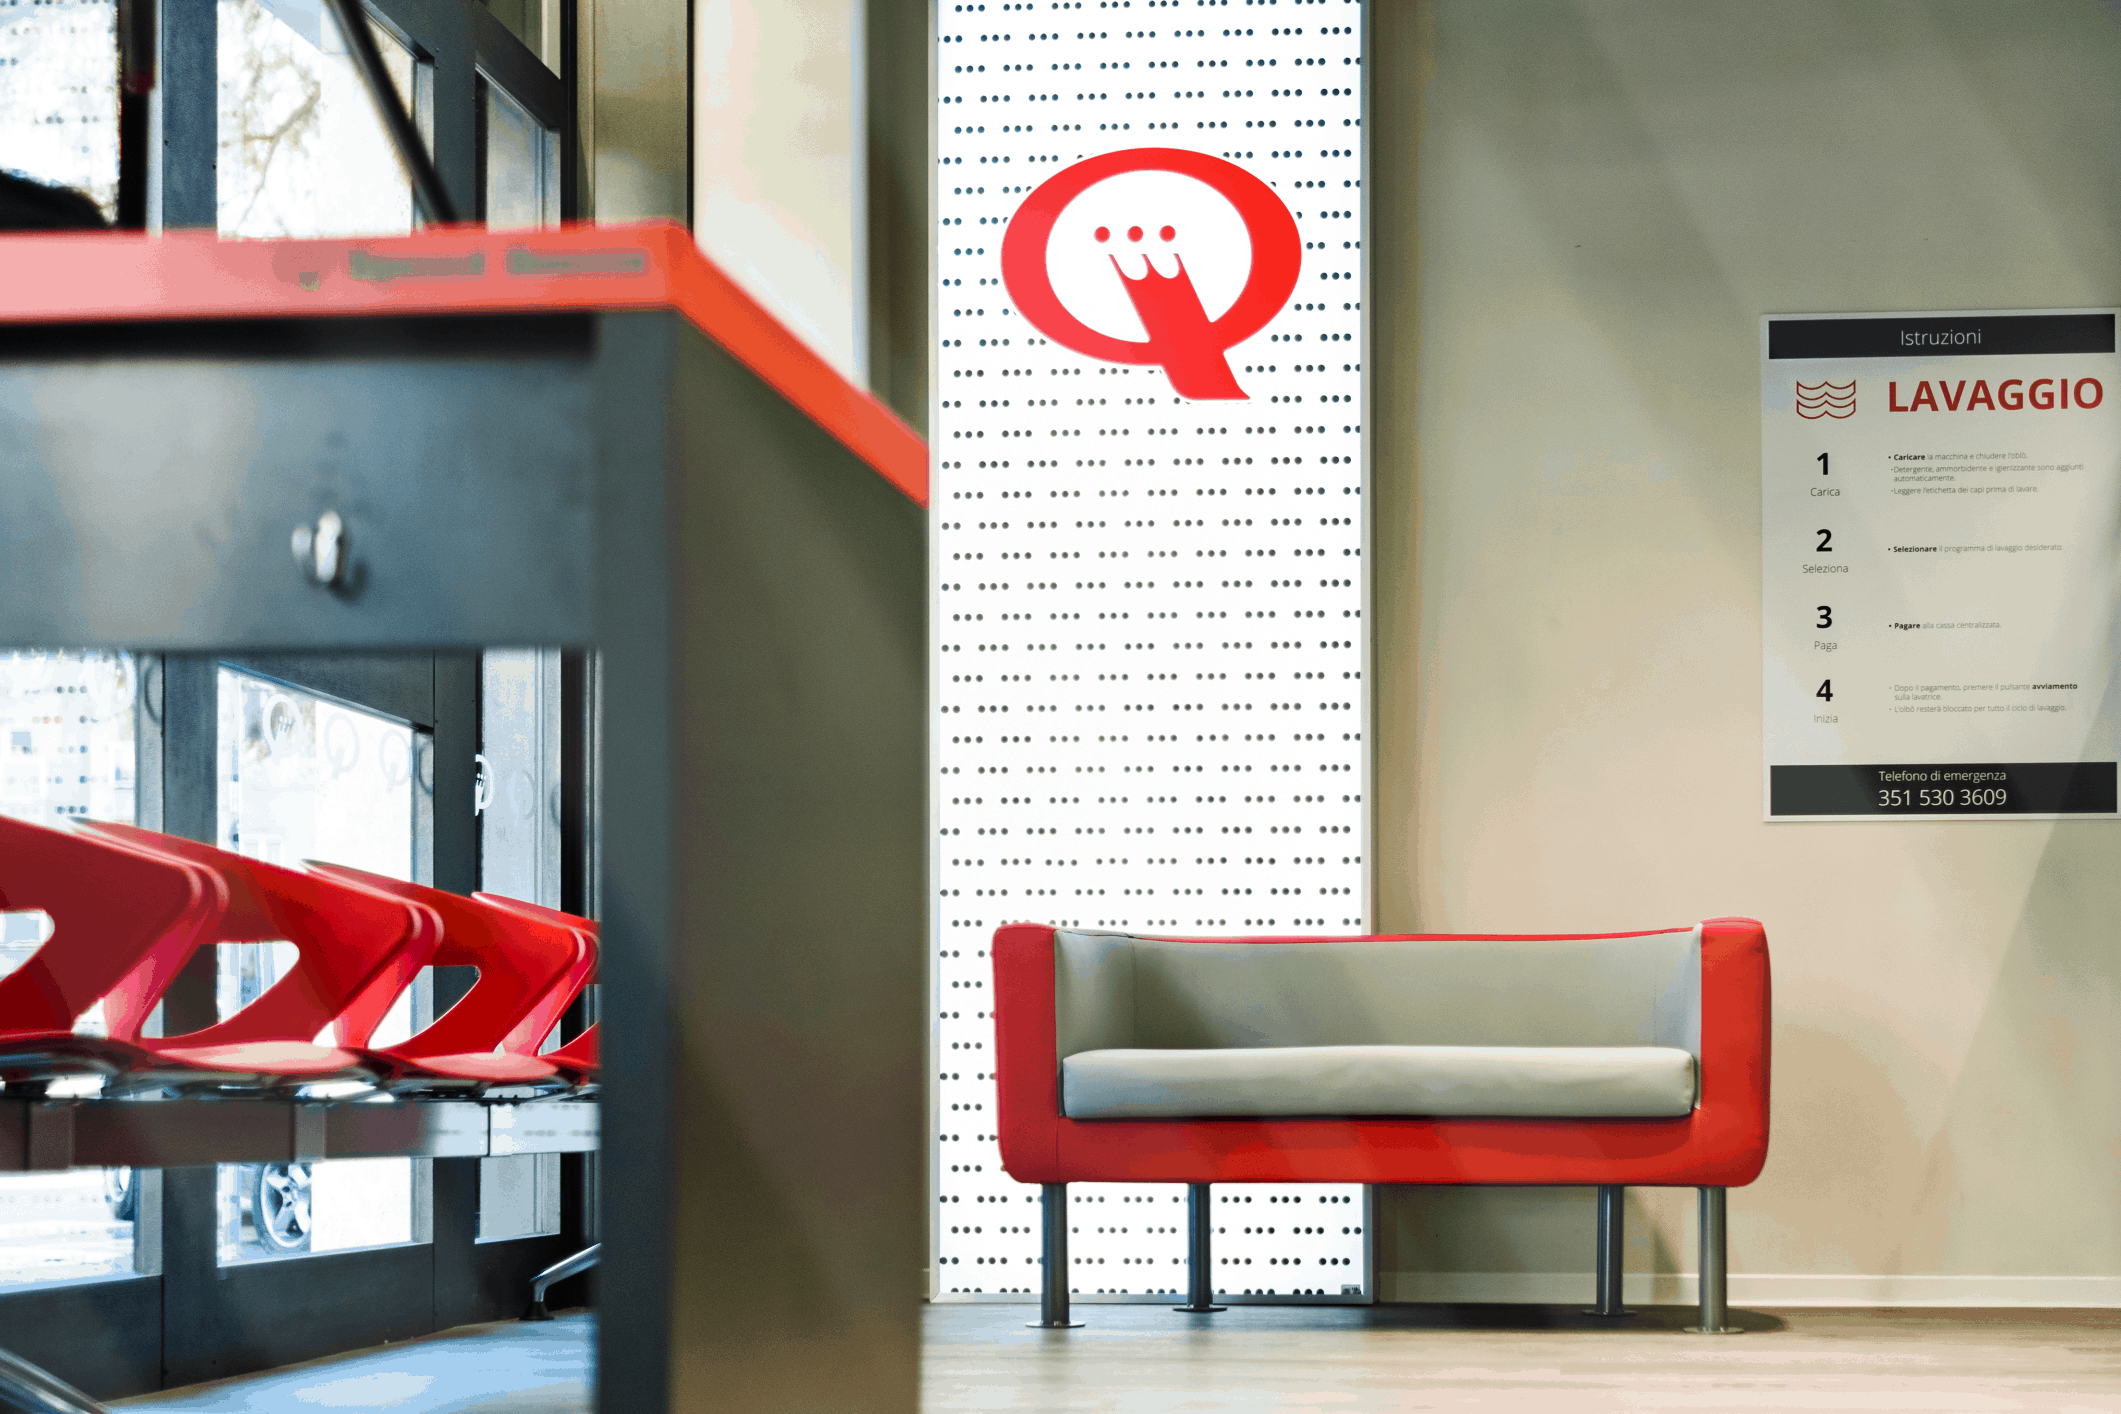 speed queen, Speed Queen releases a new design for its Self-Service laundries